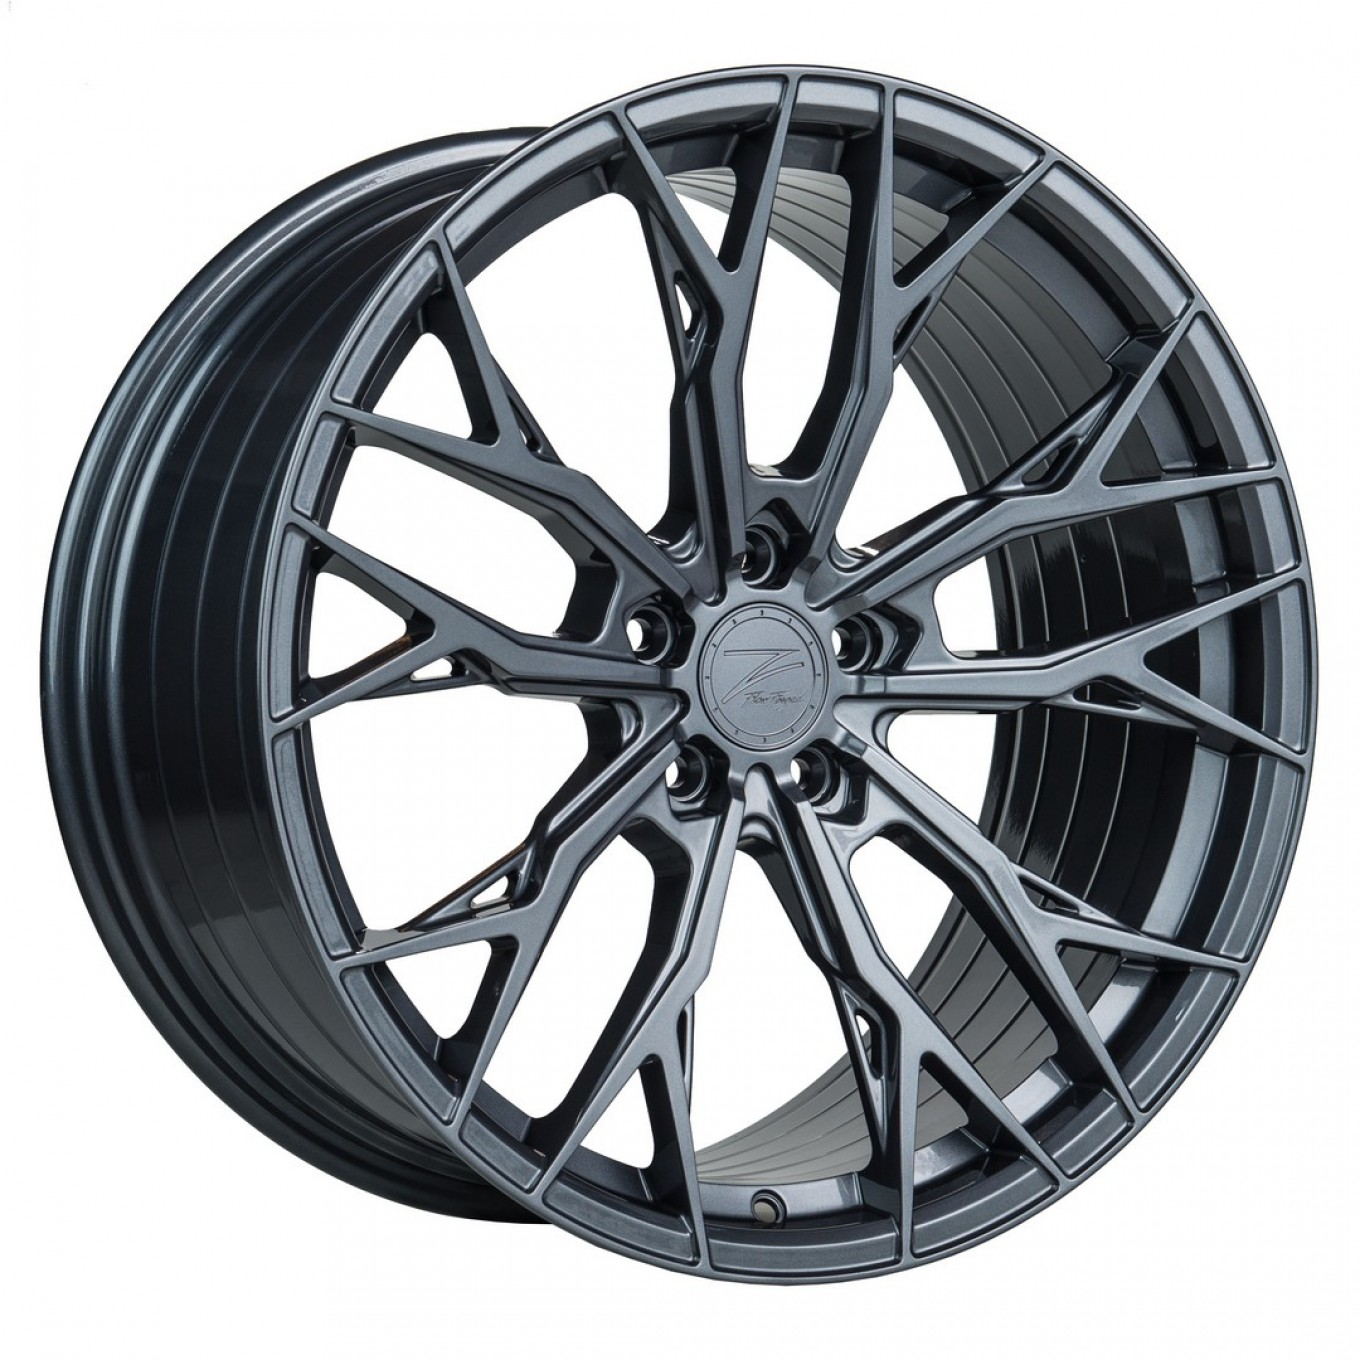 ZP7.1 FlowForged | Gloss Metal